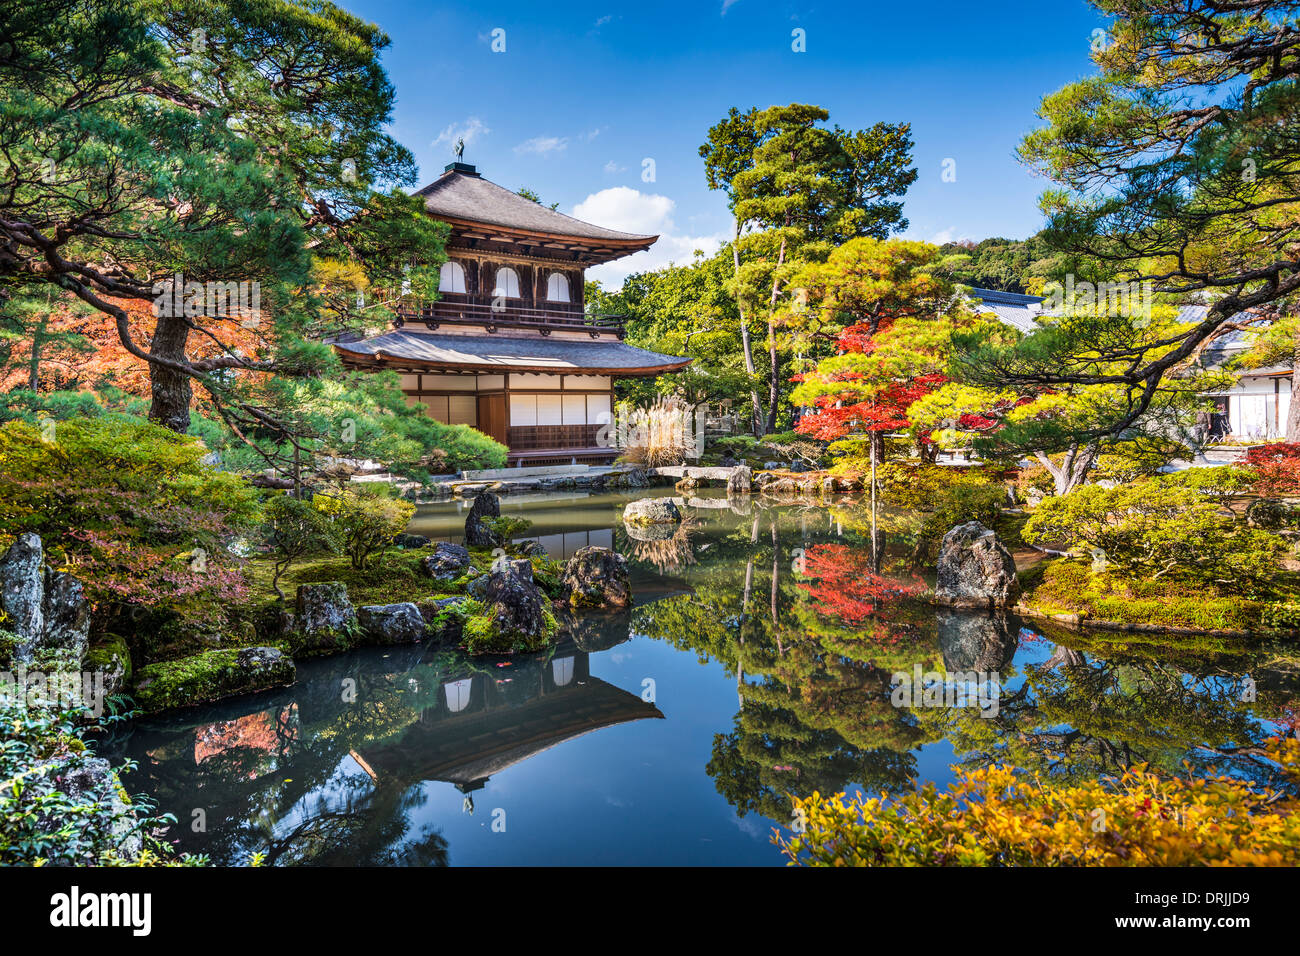 Ginkaku-ji Silver Pavilion during the autumn season in Kyoto, Japan. - Stock Image